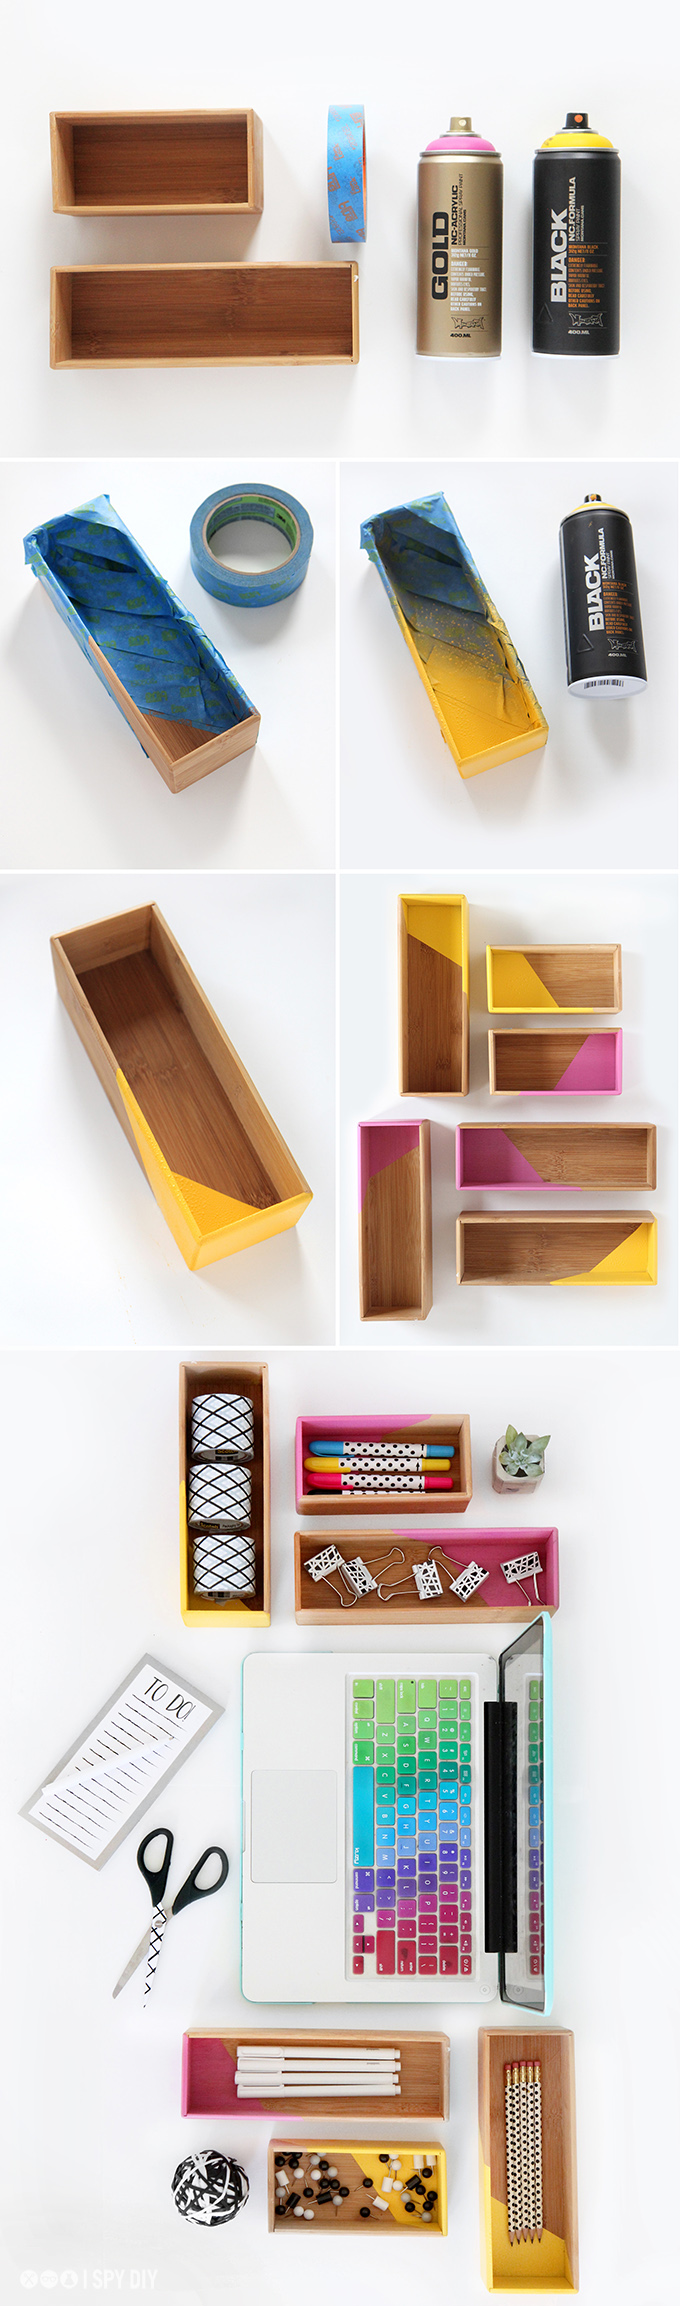 Ispydiy_supplieholder_steps